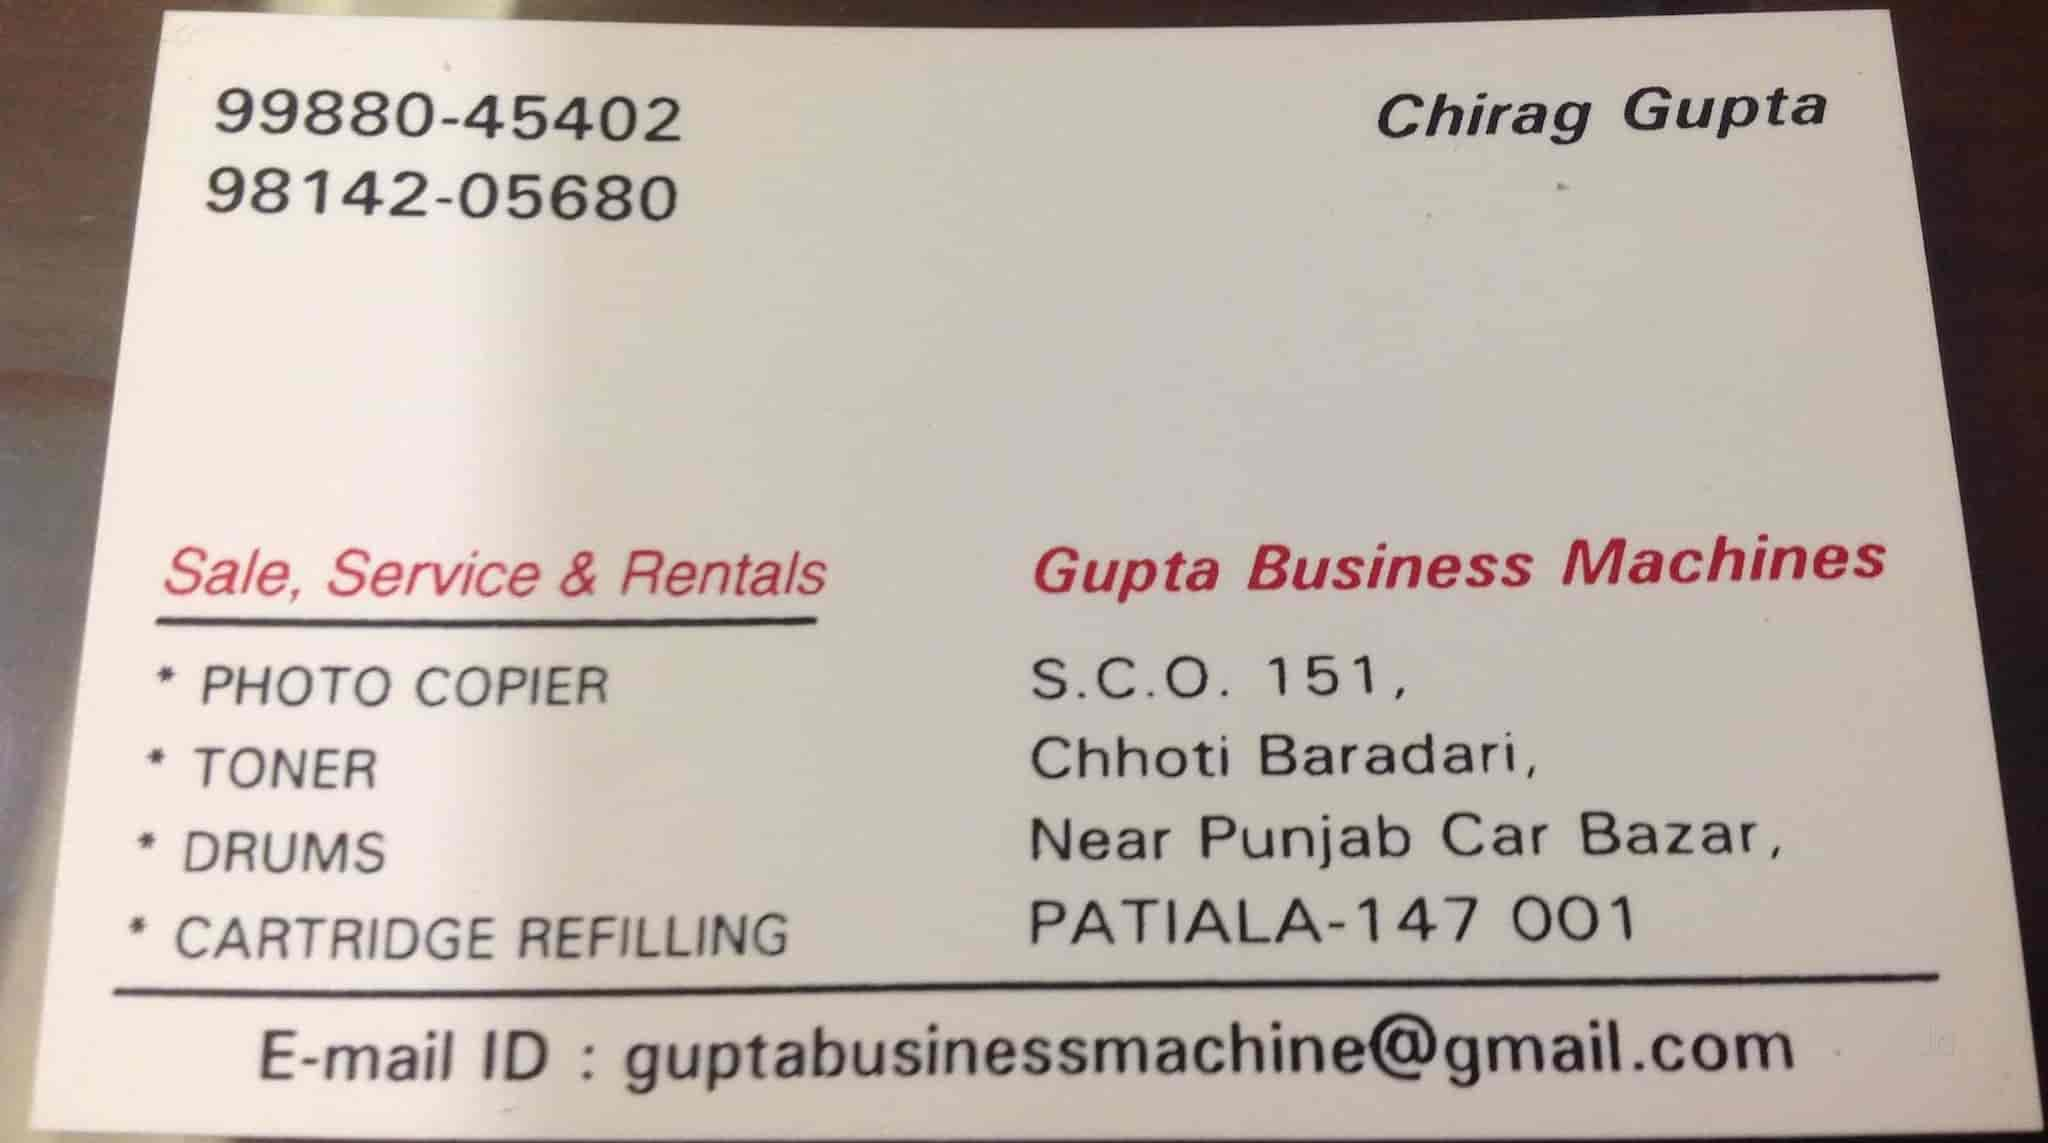 Gupta business machine photos patiala pictures images gallery visiting card gupta business machine photos patiala digital photocopier dealers canon reheart Images